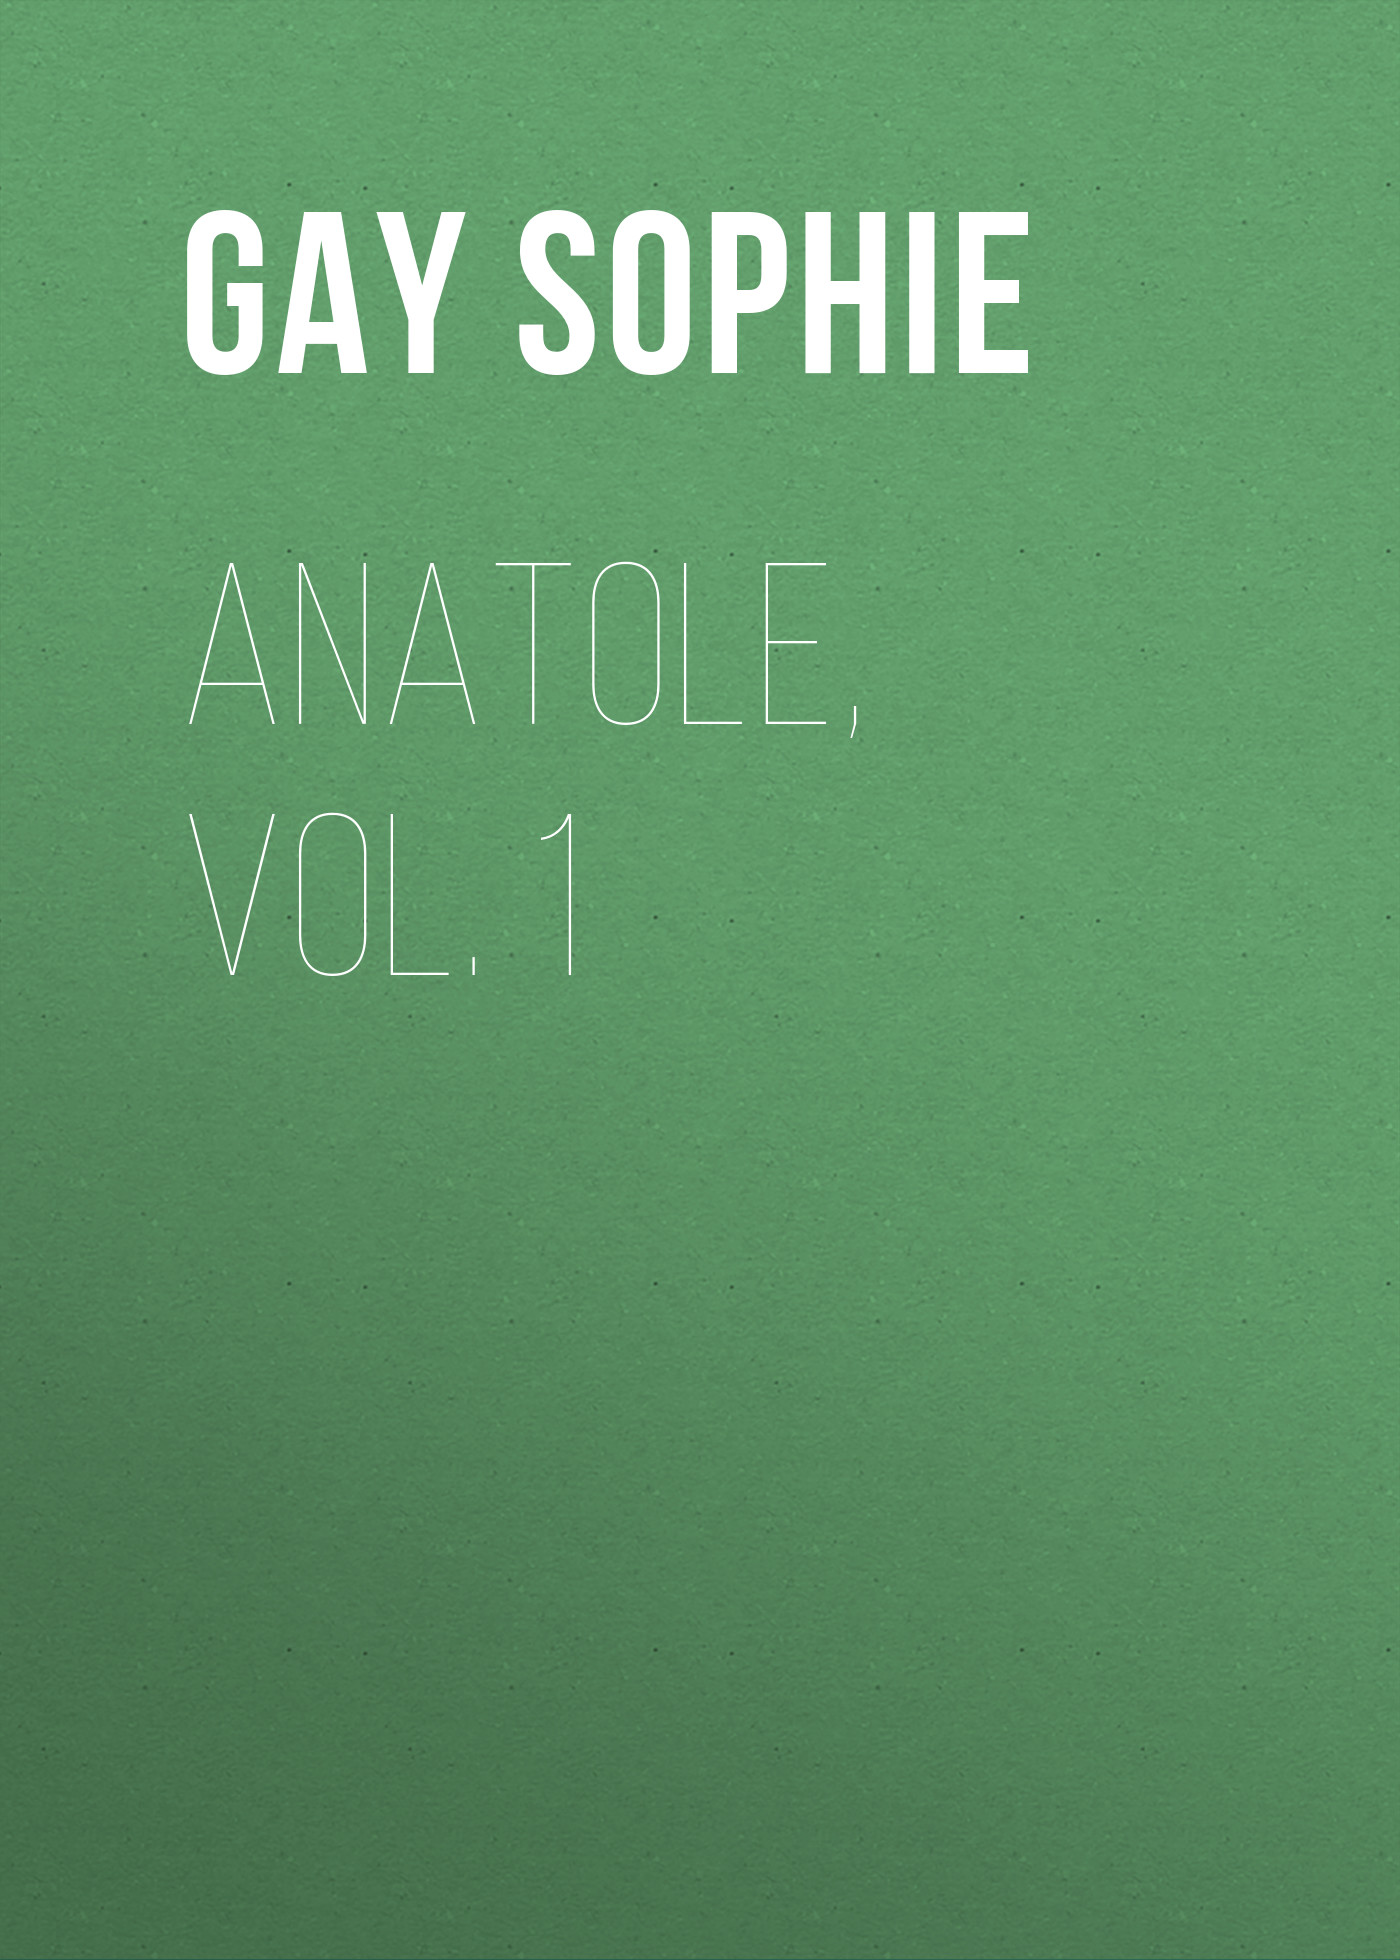 Gay Sophie Anatole, Vol. 1